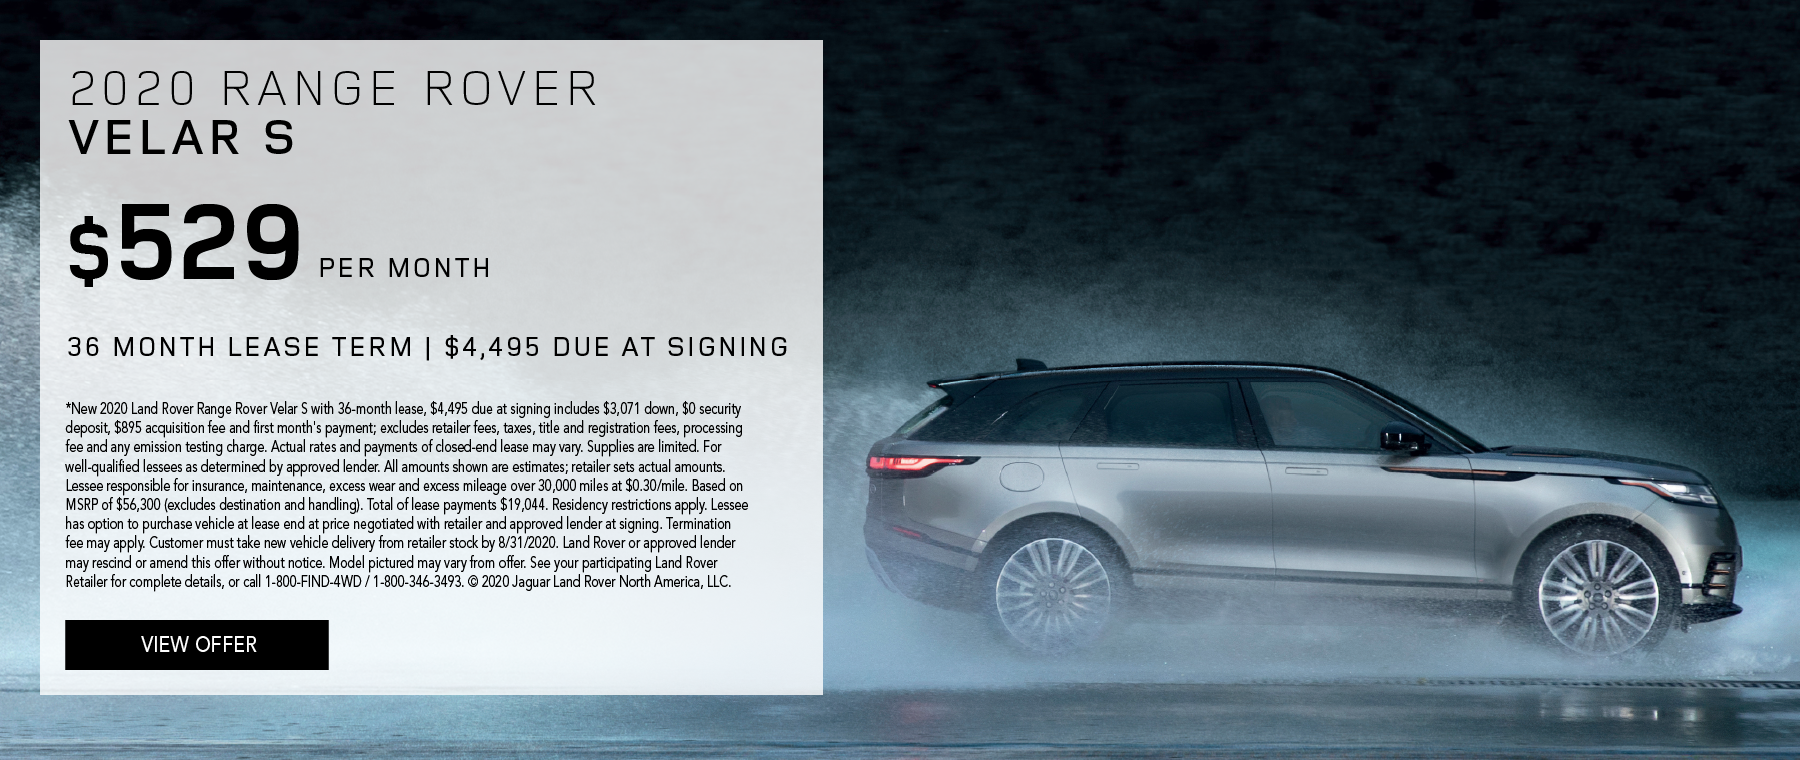 2020 RANGE ROVER VELAR S. $529 PER MONTH. 36 MONTH LEASE TERM. $4,495 CASH DUE AT SIGNING. $0 SECURITY DEPOSIT. 10,000 MILES PER YEAR. EXCLUDES RETAILER FEES, TAXES, TITLE AND REGISTRATION FEES, PROCESSING FEE AND ANY EMISSION TESTING CHARGE. ENDS 8/31/2020.